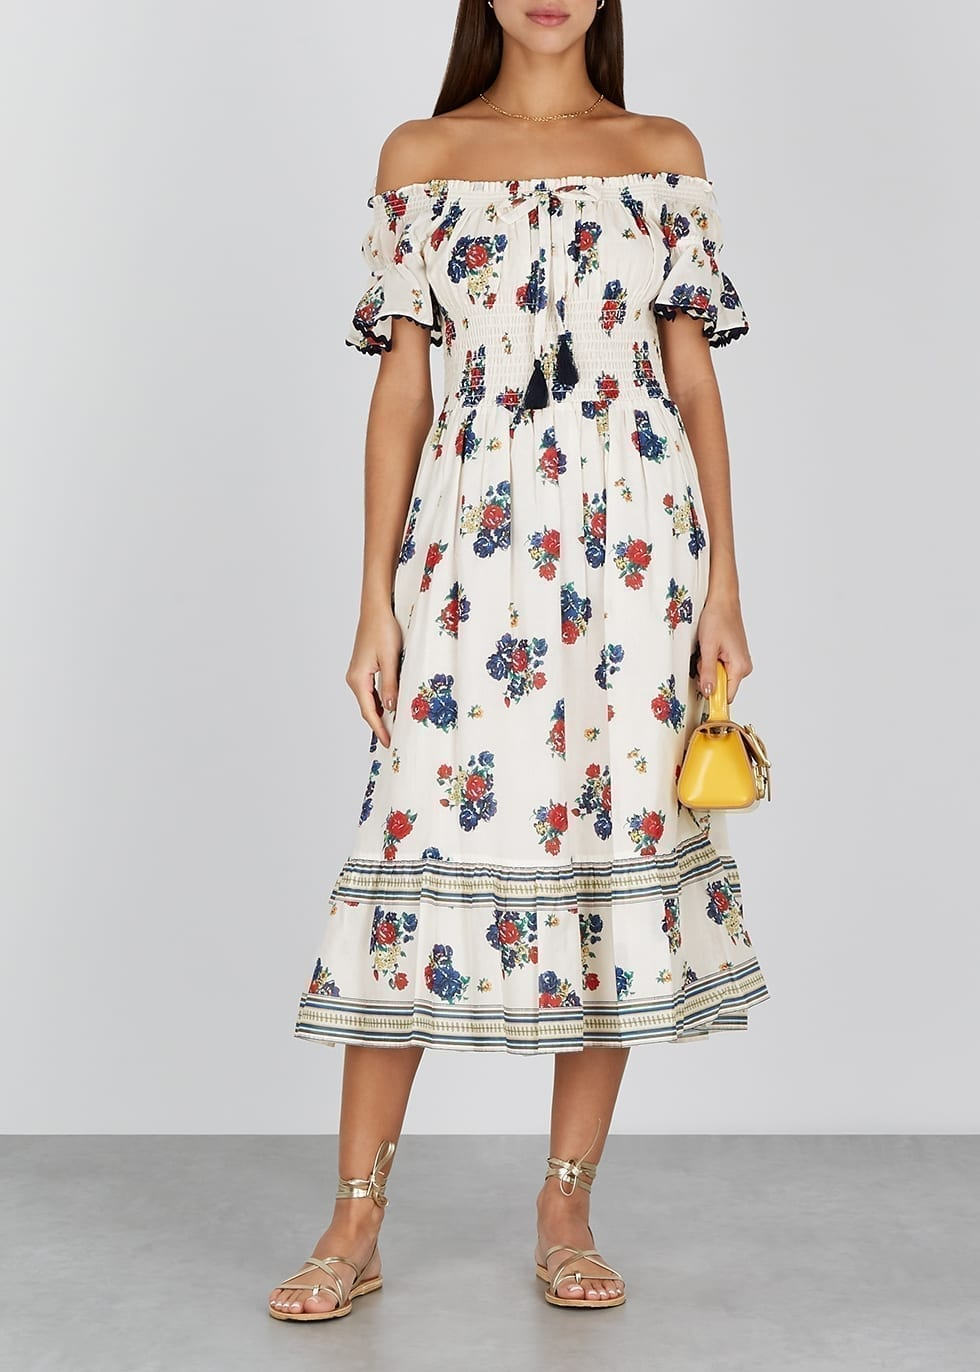 TORY BURCH Floral-print Smocked Cotton Midi Dress